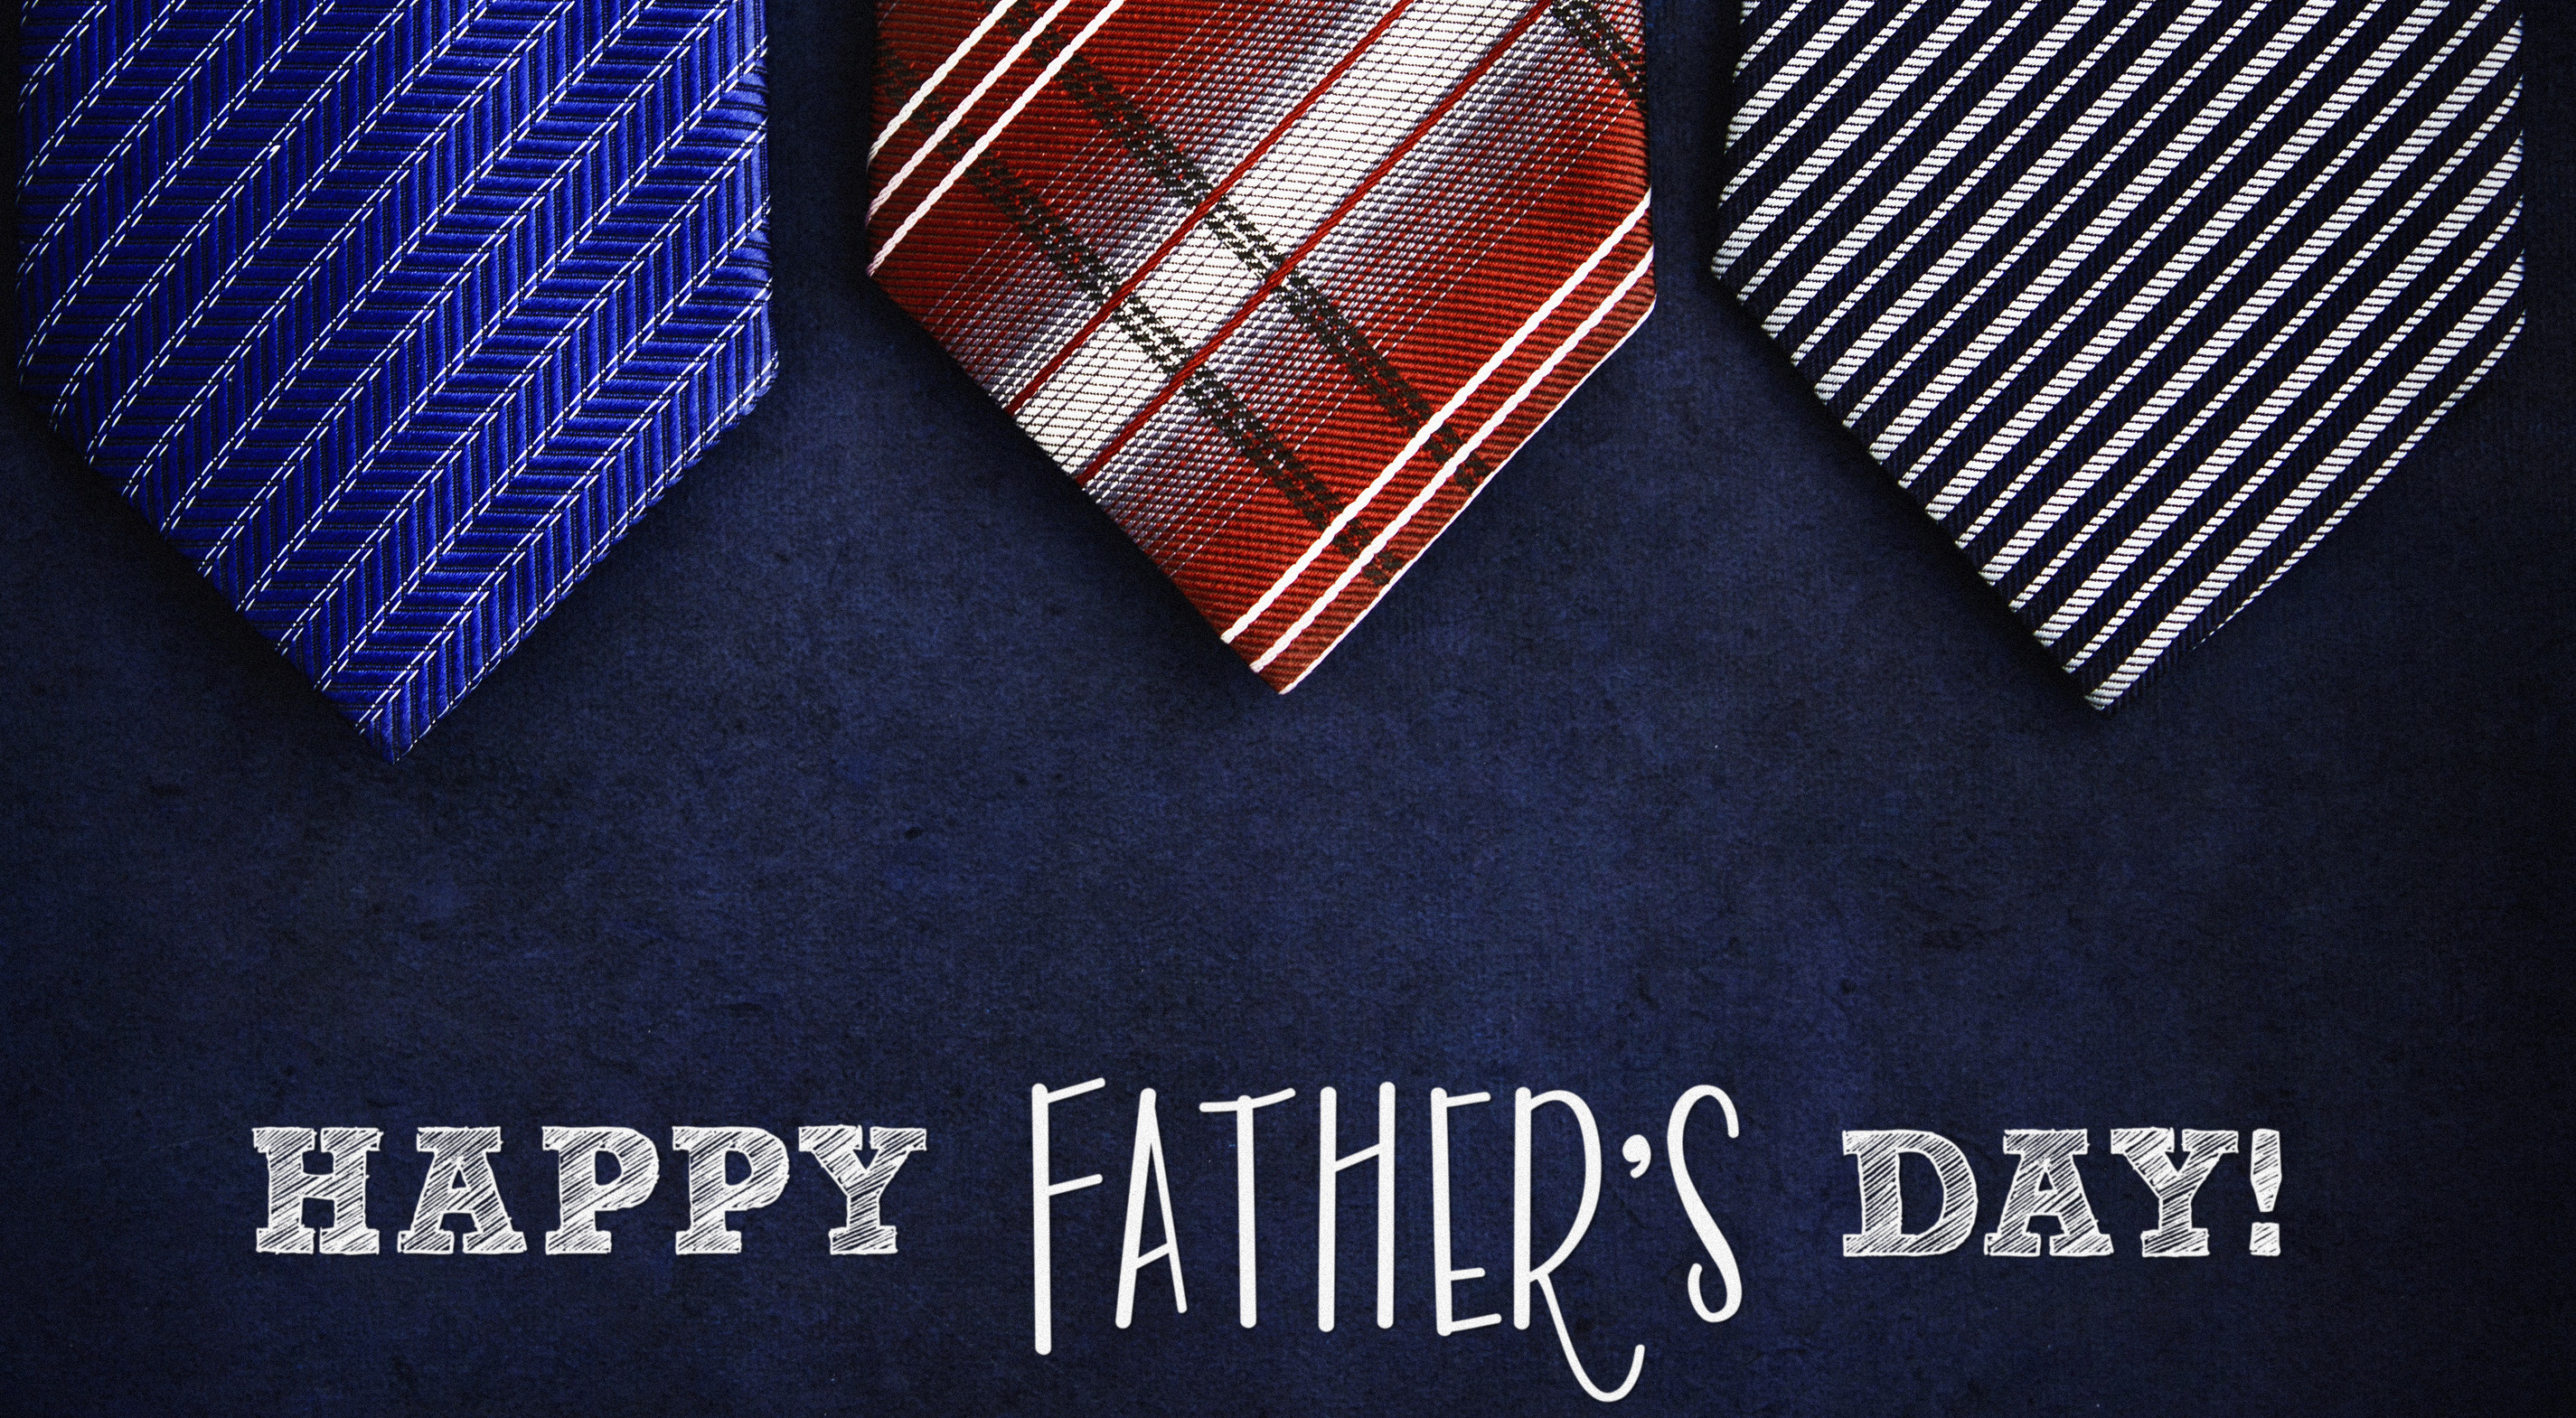 Happy-Father's-Day!-Ties-on-chalkboard-with-message-for-dad-537408086_3159x3159.jpeg